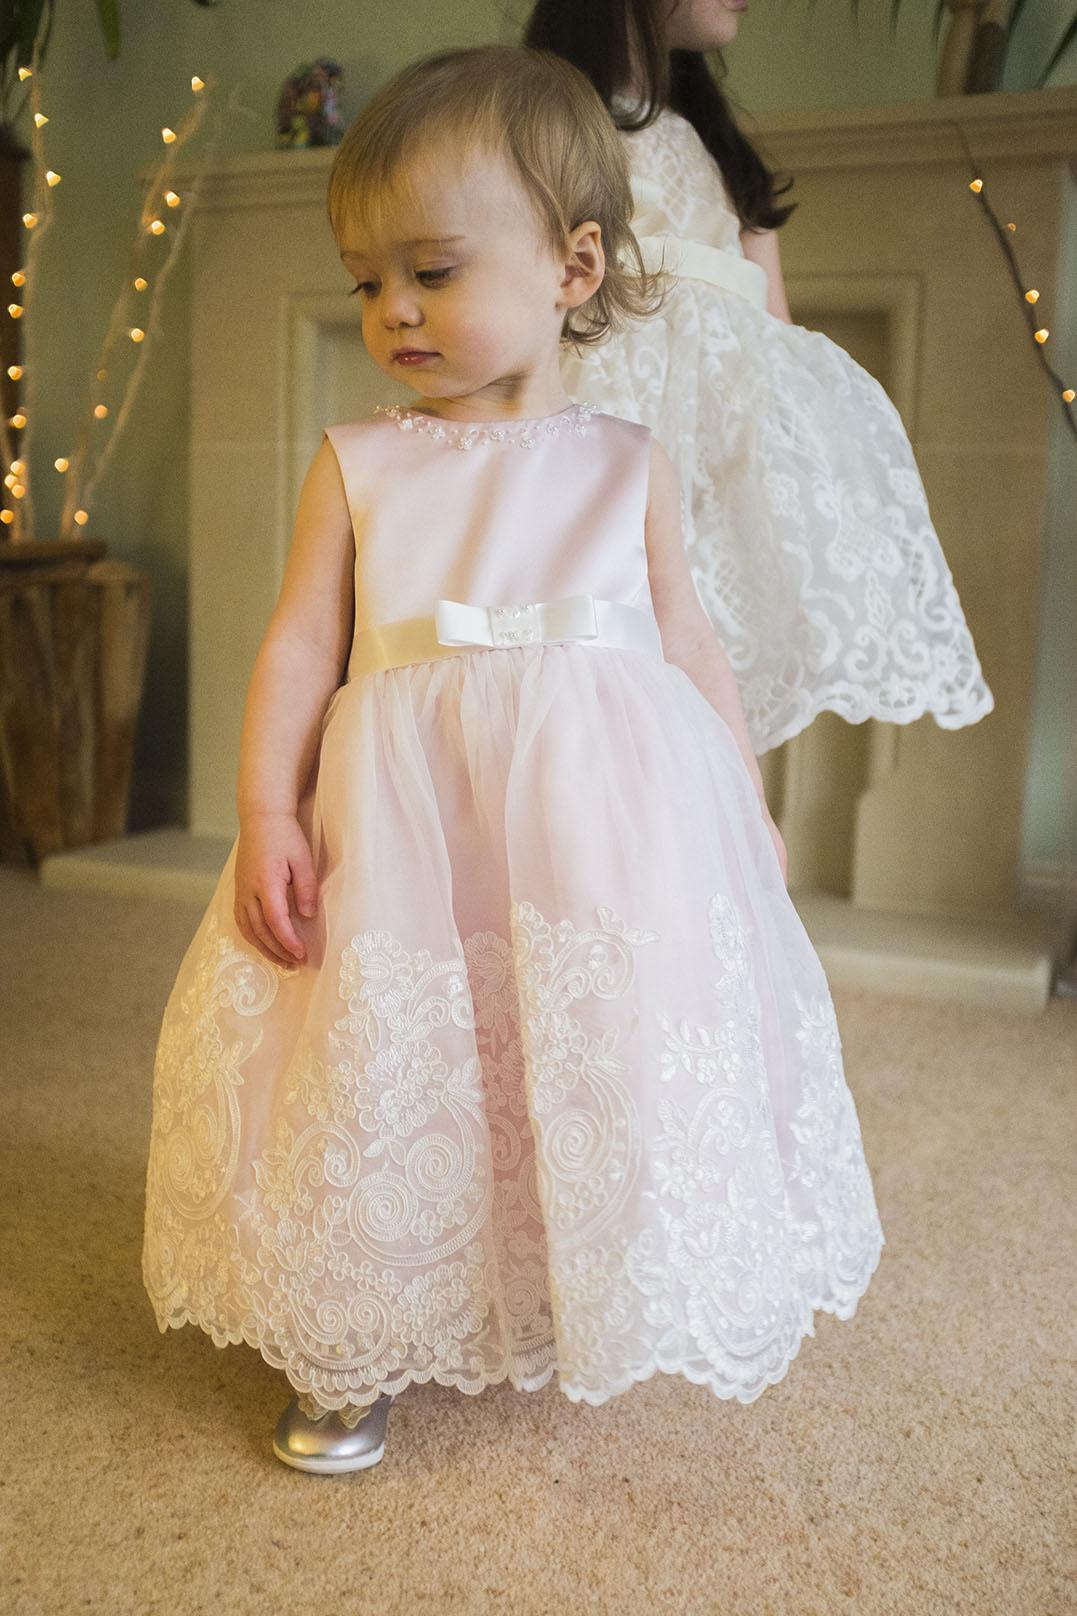 an 18 month old in a dress from Roco clothing